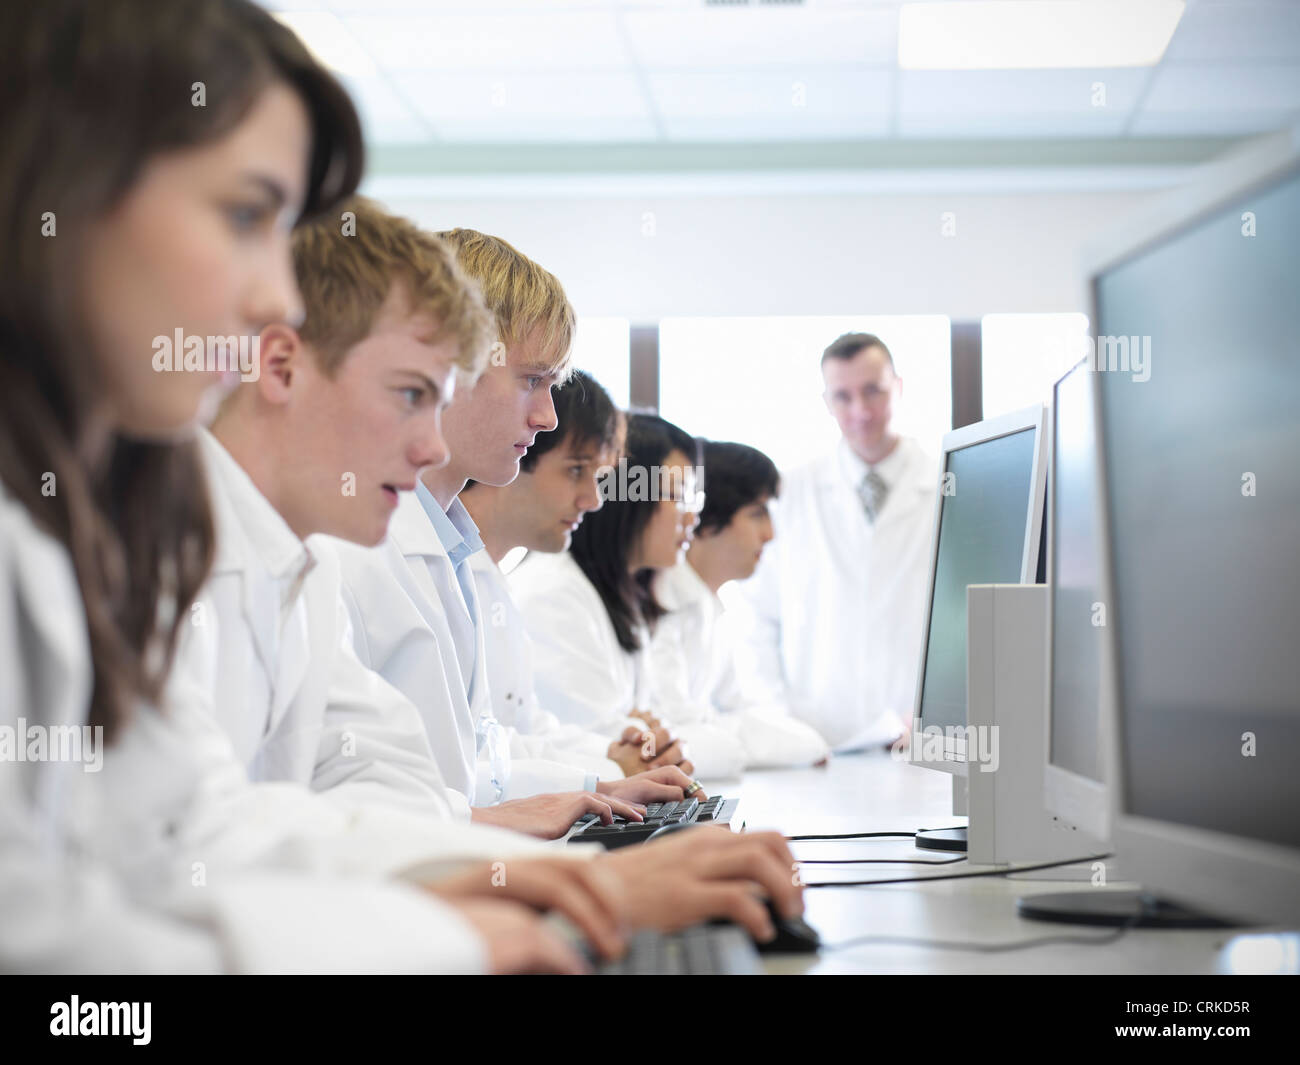 Science students working on computers - Stock Image